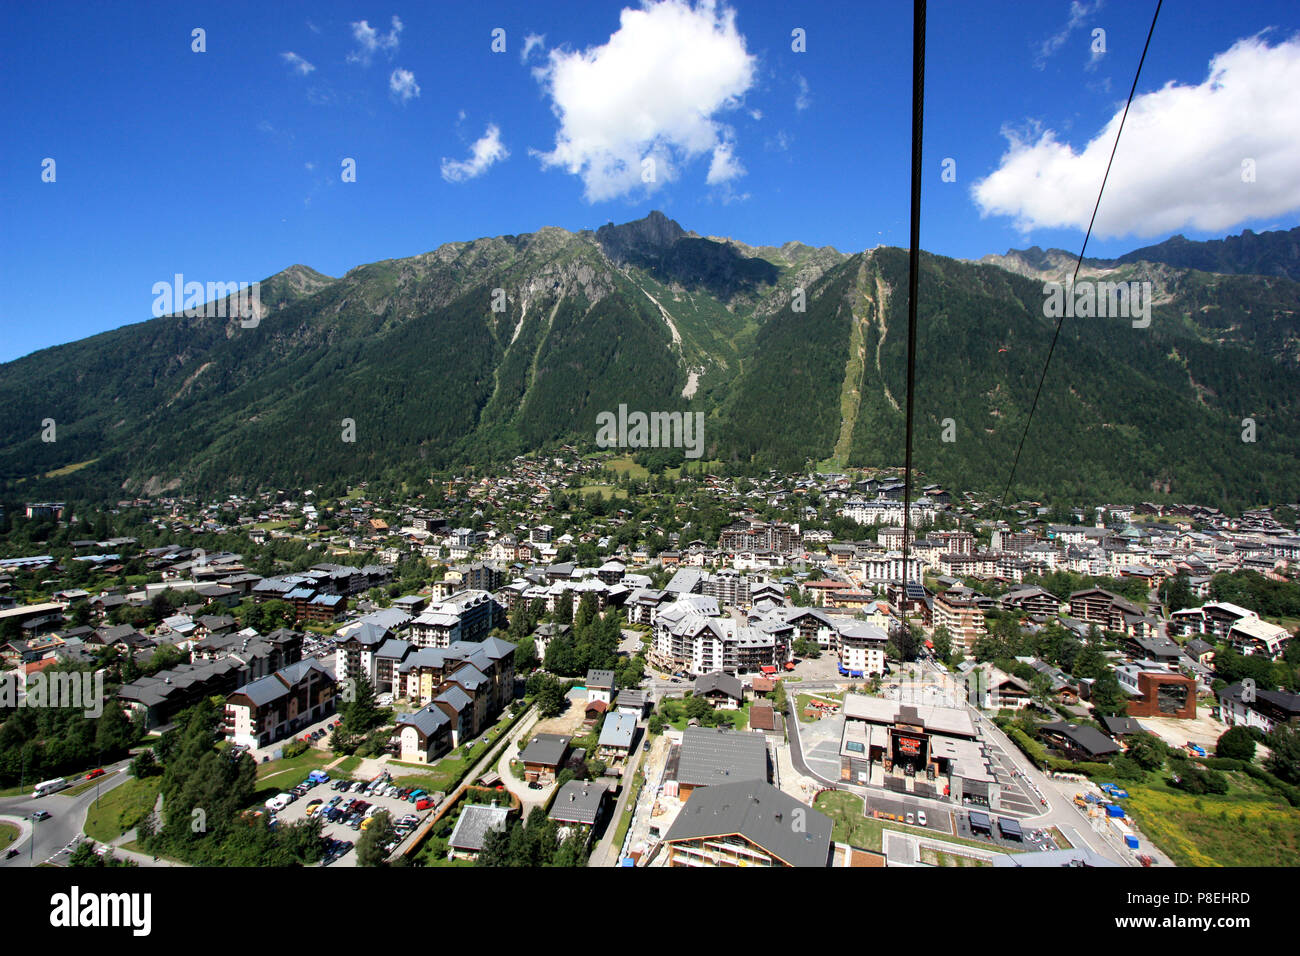 Chamonix, Haute Savoie, France, seen from the Aiguille-du-Midi cable car - Stock Image